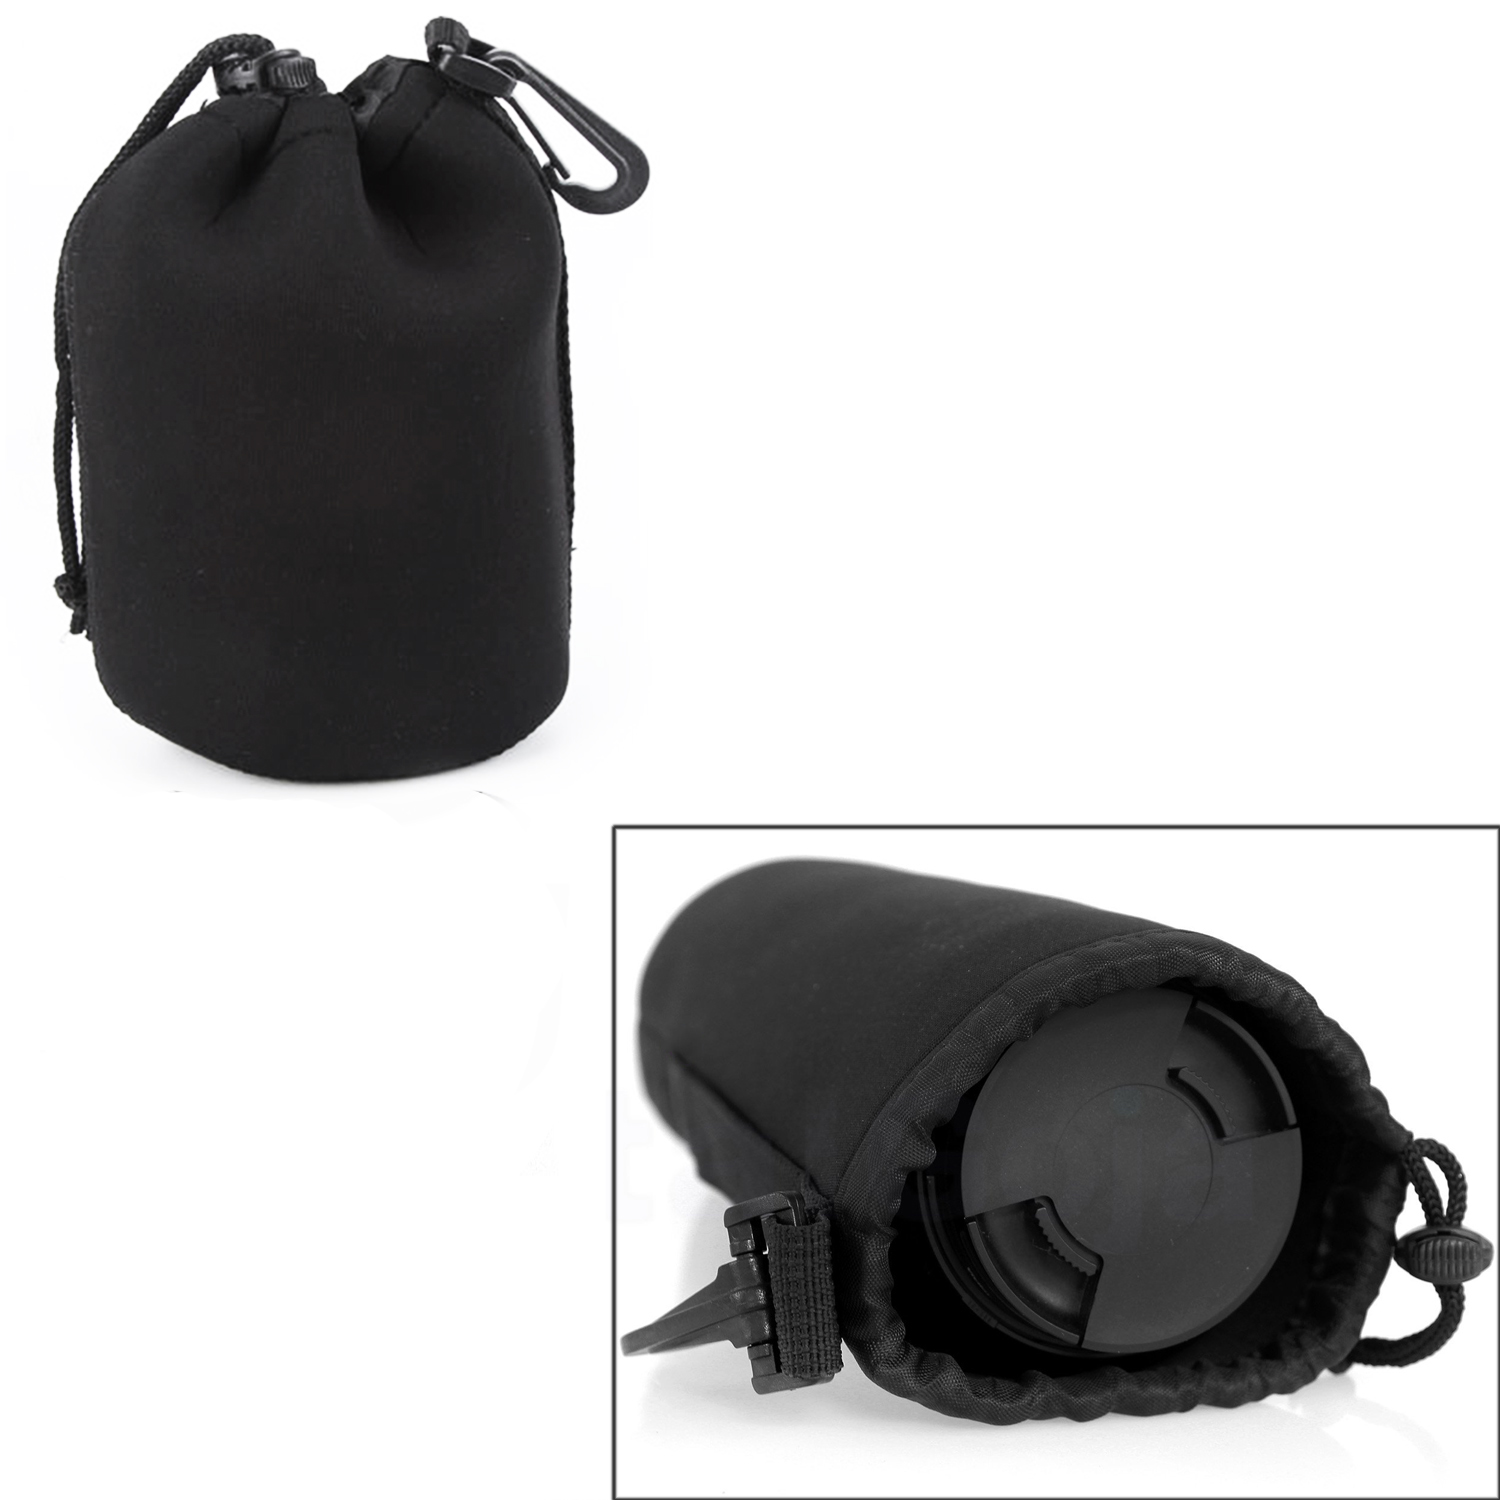 Camera Camera Dslr Accessories online get cheap dslr camera accessories aliexpress com alibaba drawstring soft neoprene lens pouch storage bag case cover for sony canon nikon